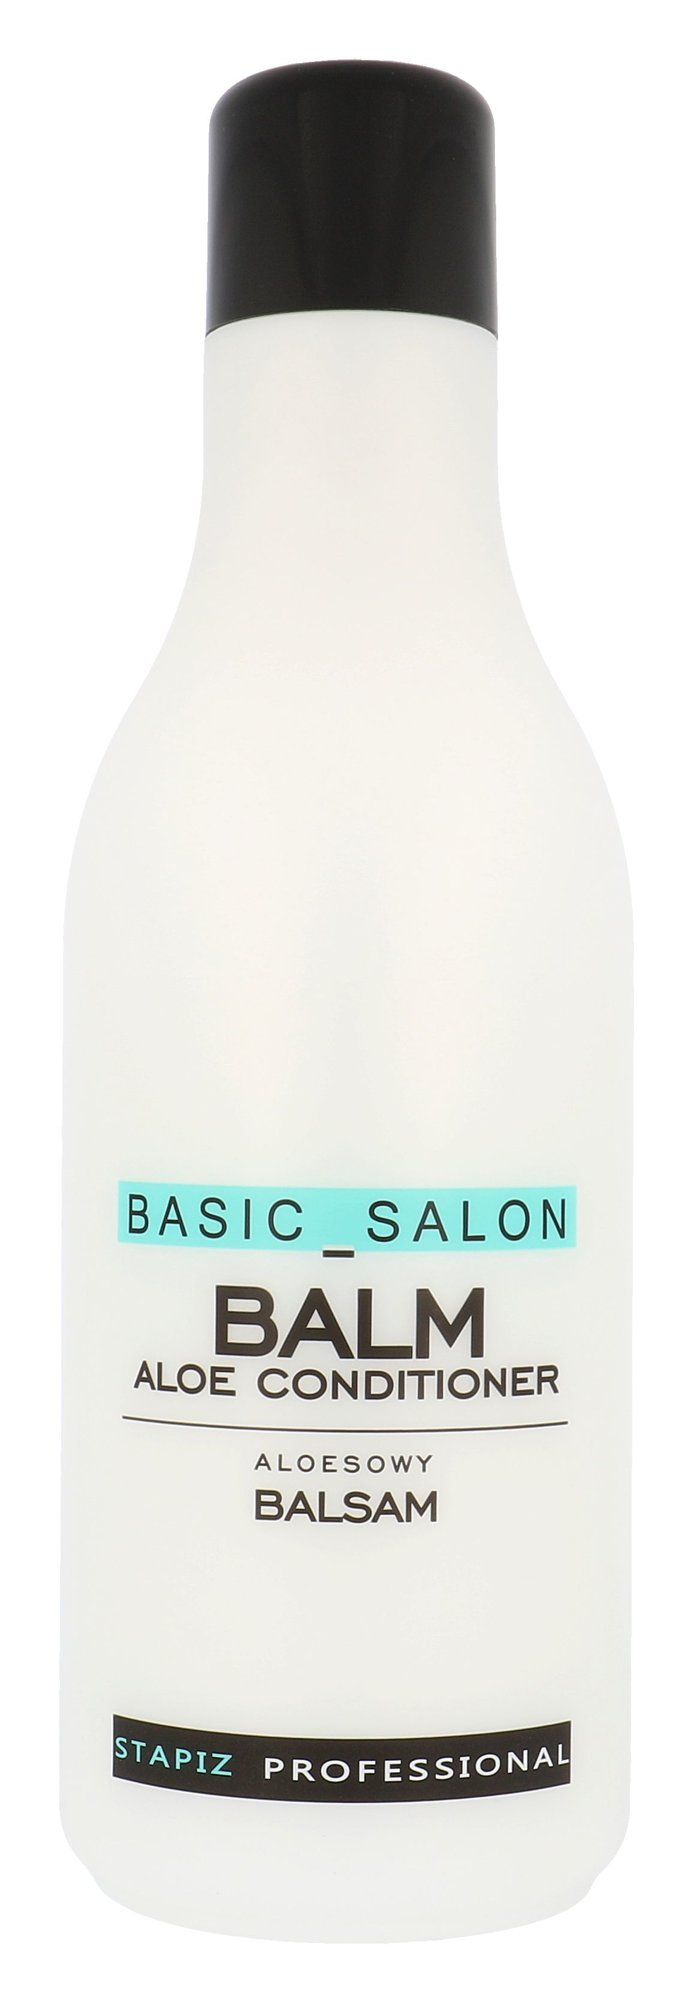 Stapiz Basic Salon Aloe Conditioner Balm Cosmetic 1000ml